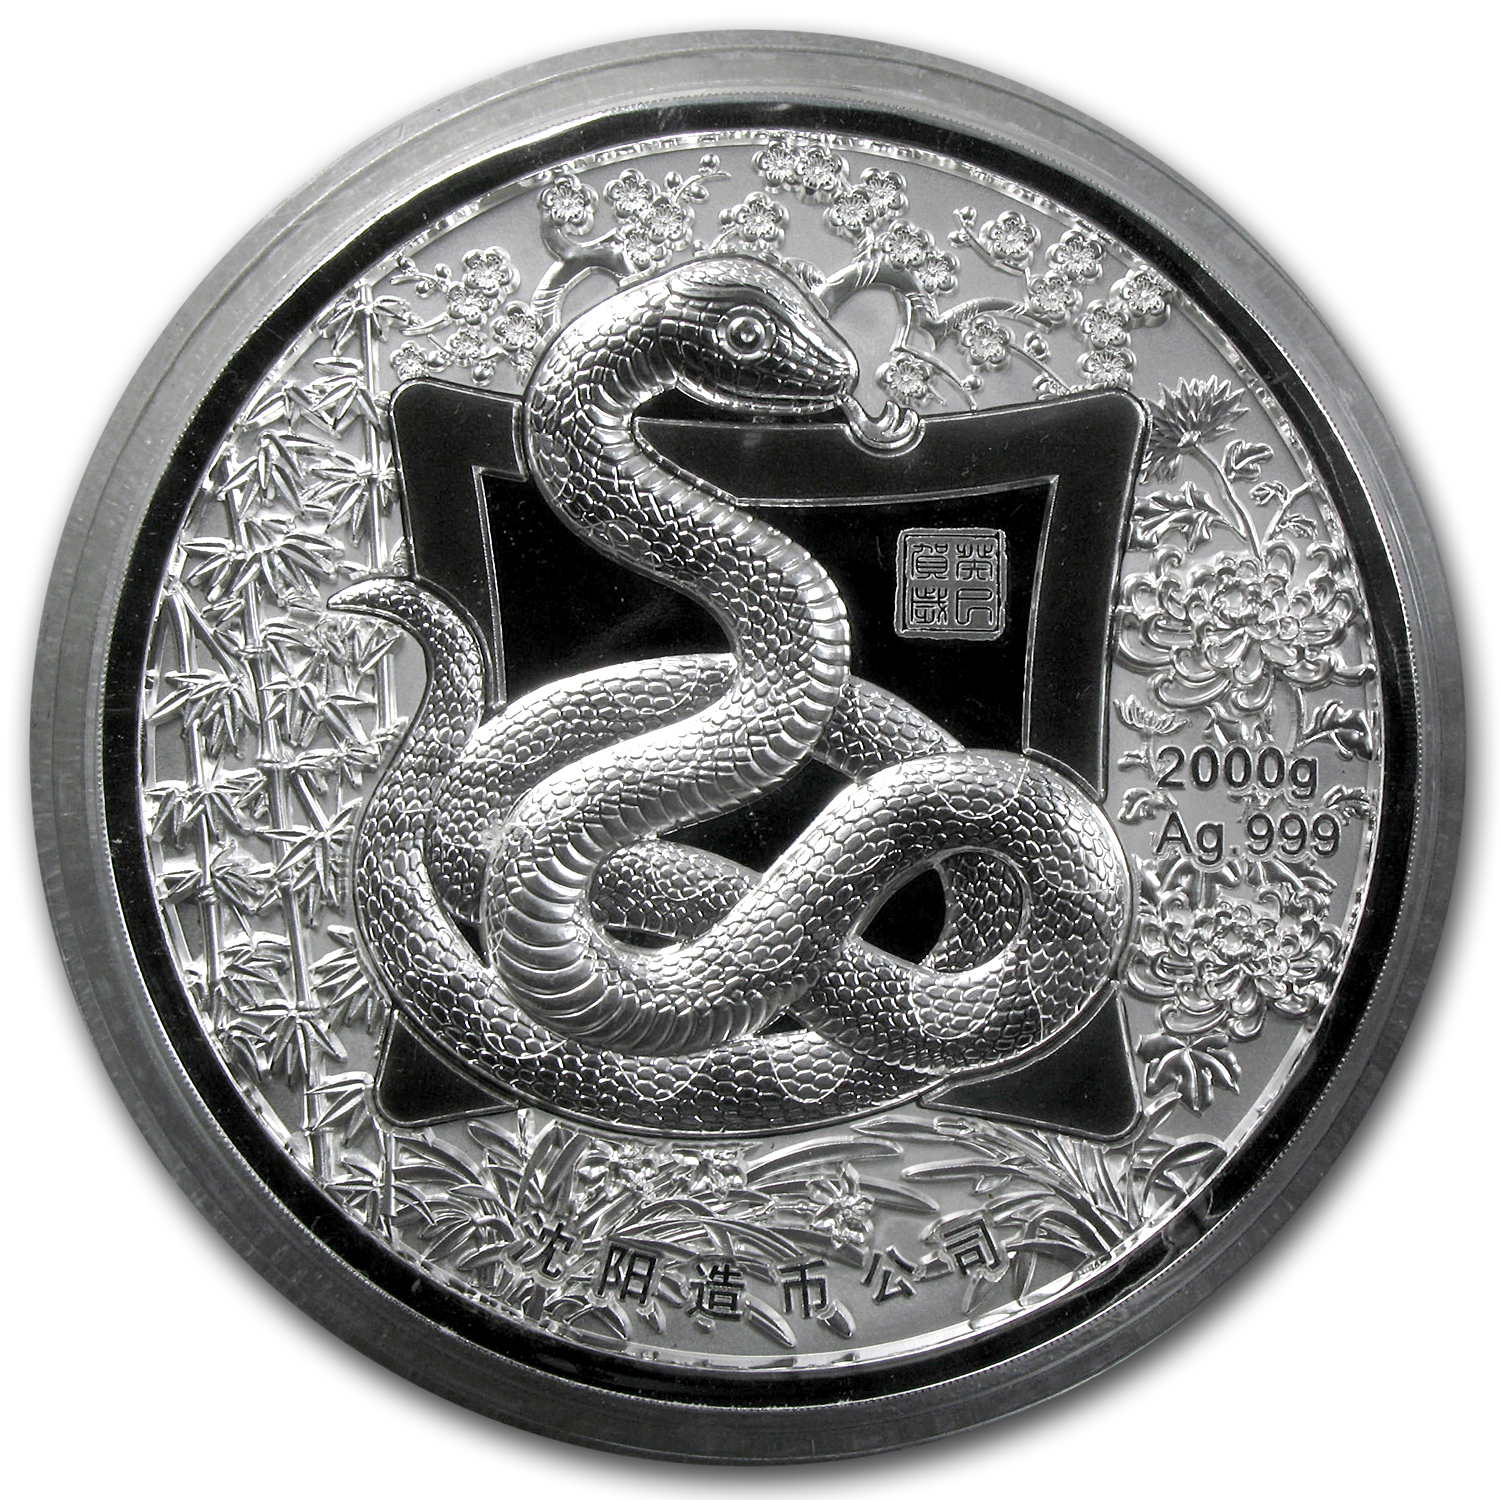 2013 2 Kilo Silver Year of the Snake Round